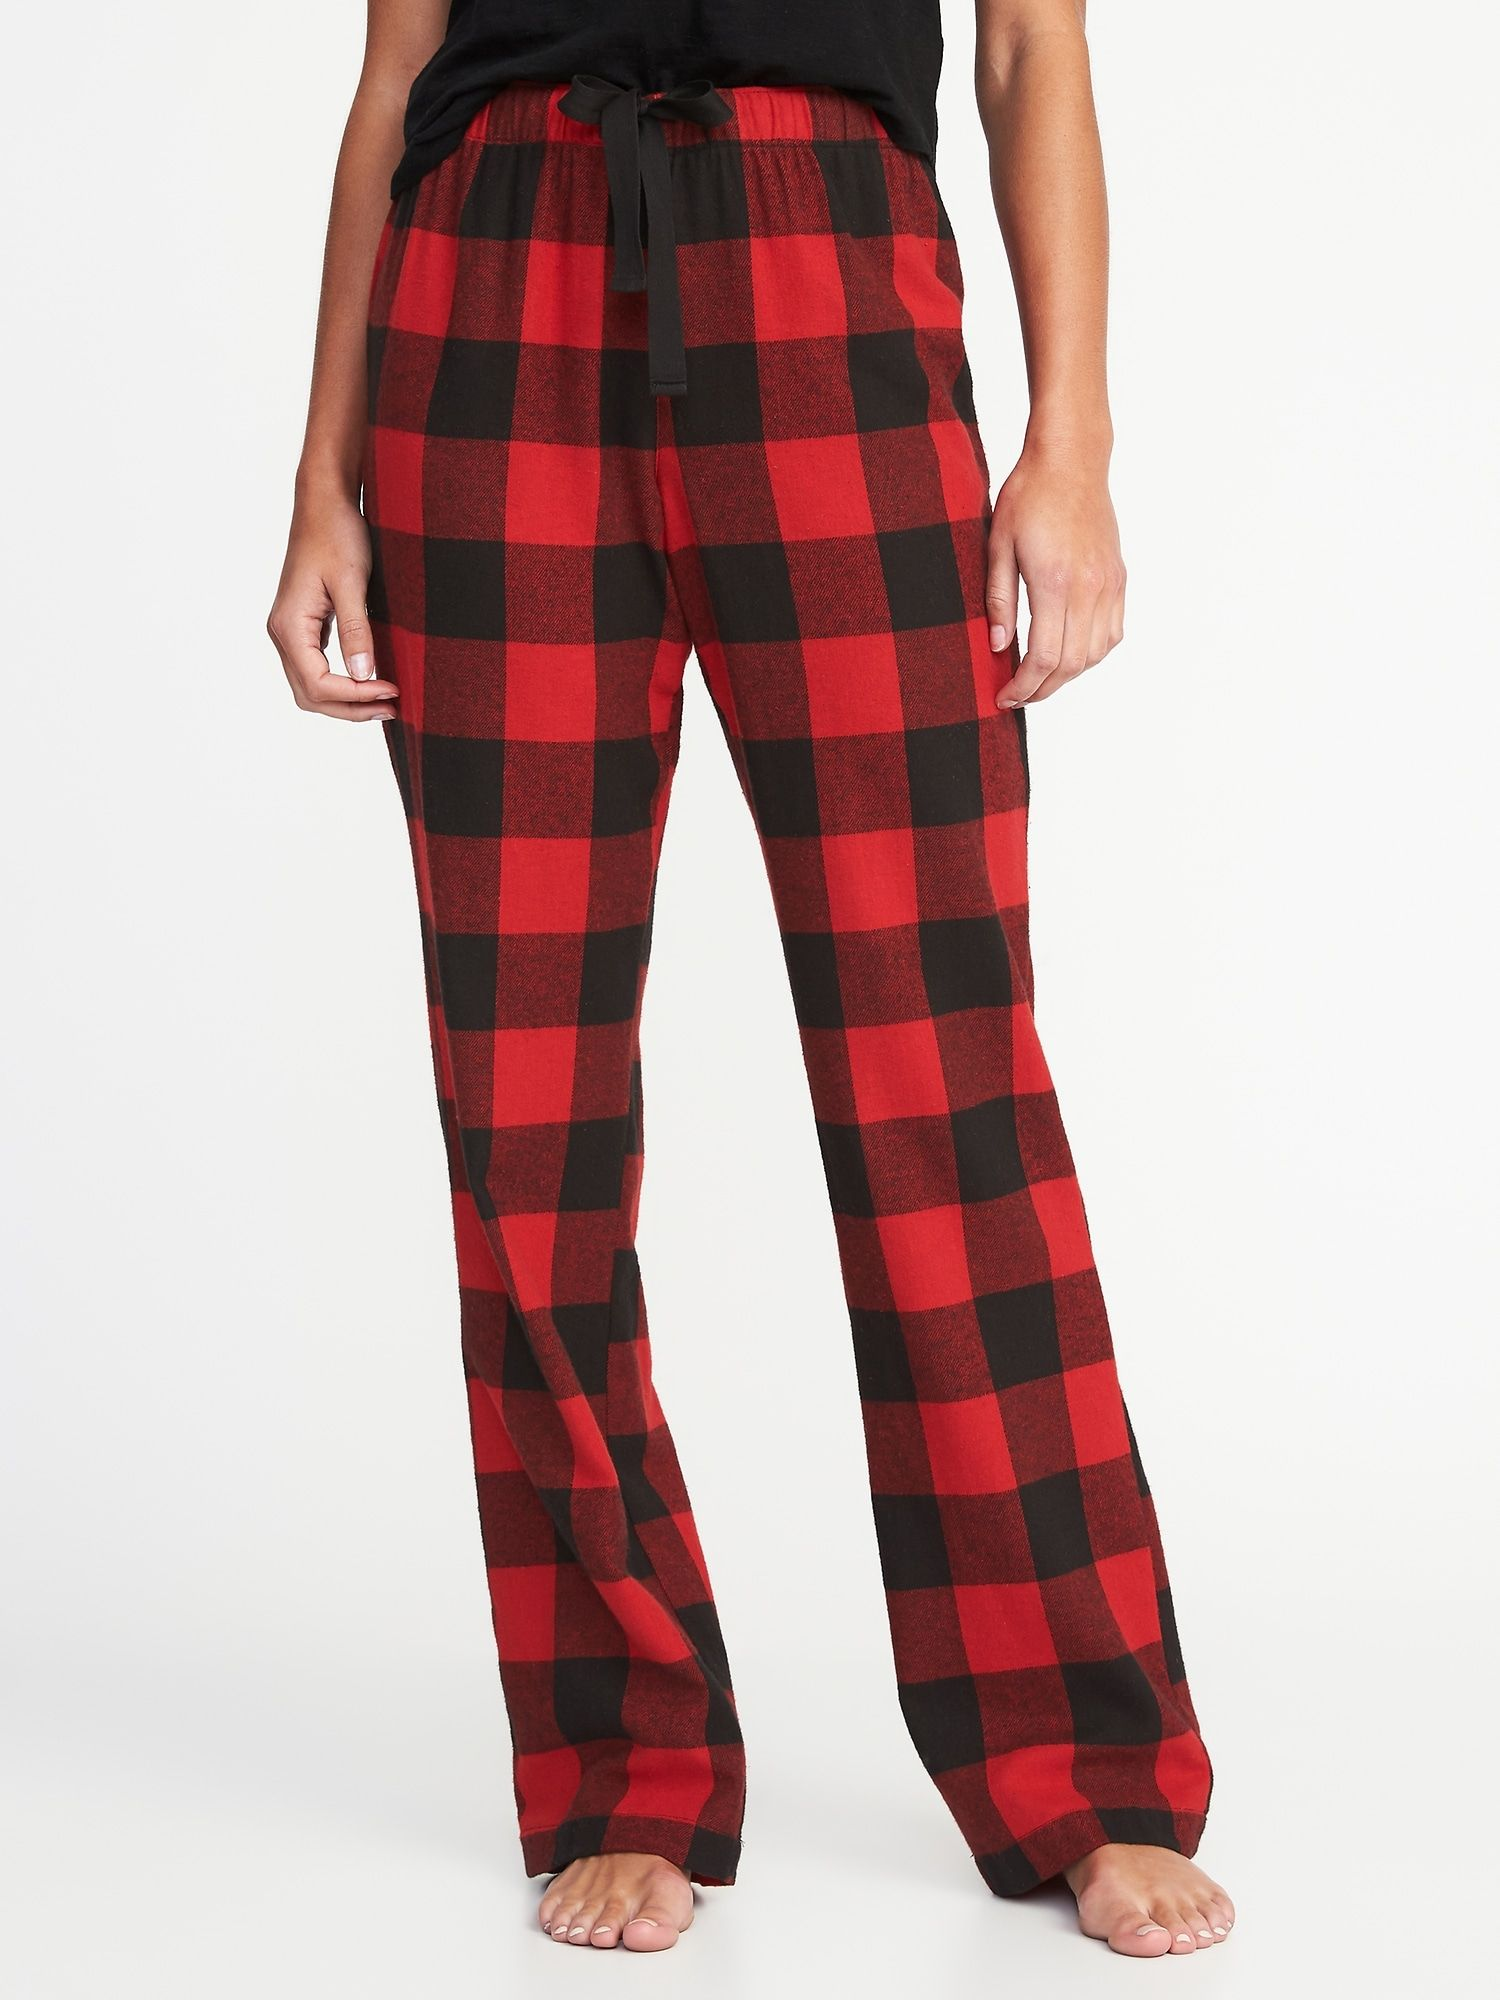 b3ded71f3cee Patterned Flannel Sleep Pants for Women in 2019